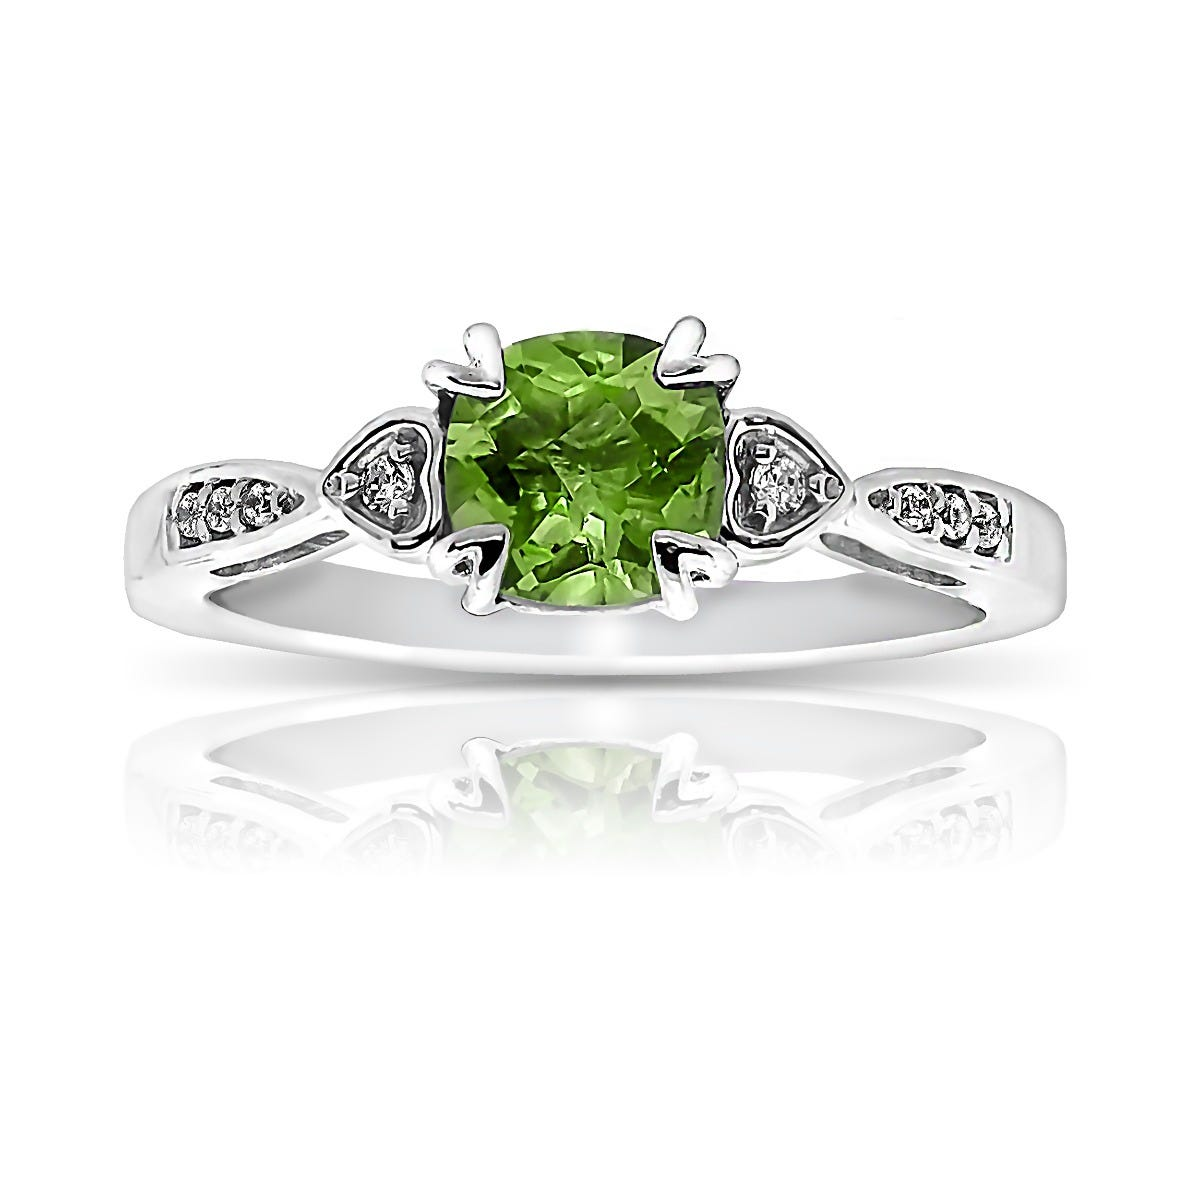 Peridot & Diamond 'Hearts' Ring in 10k White Gold